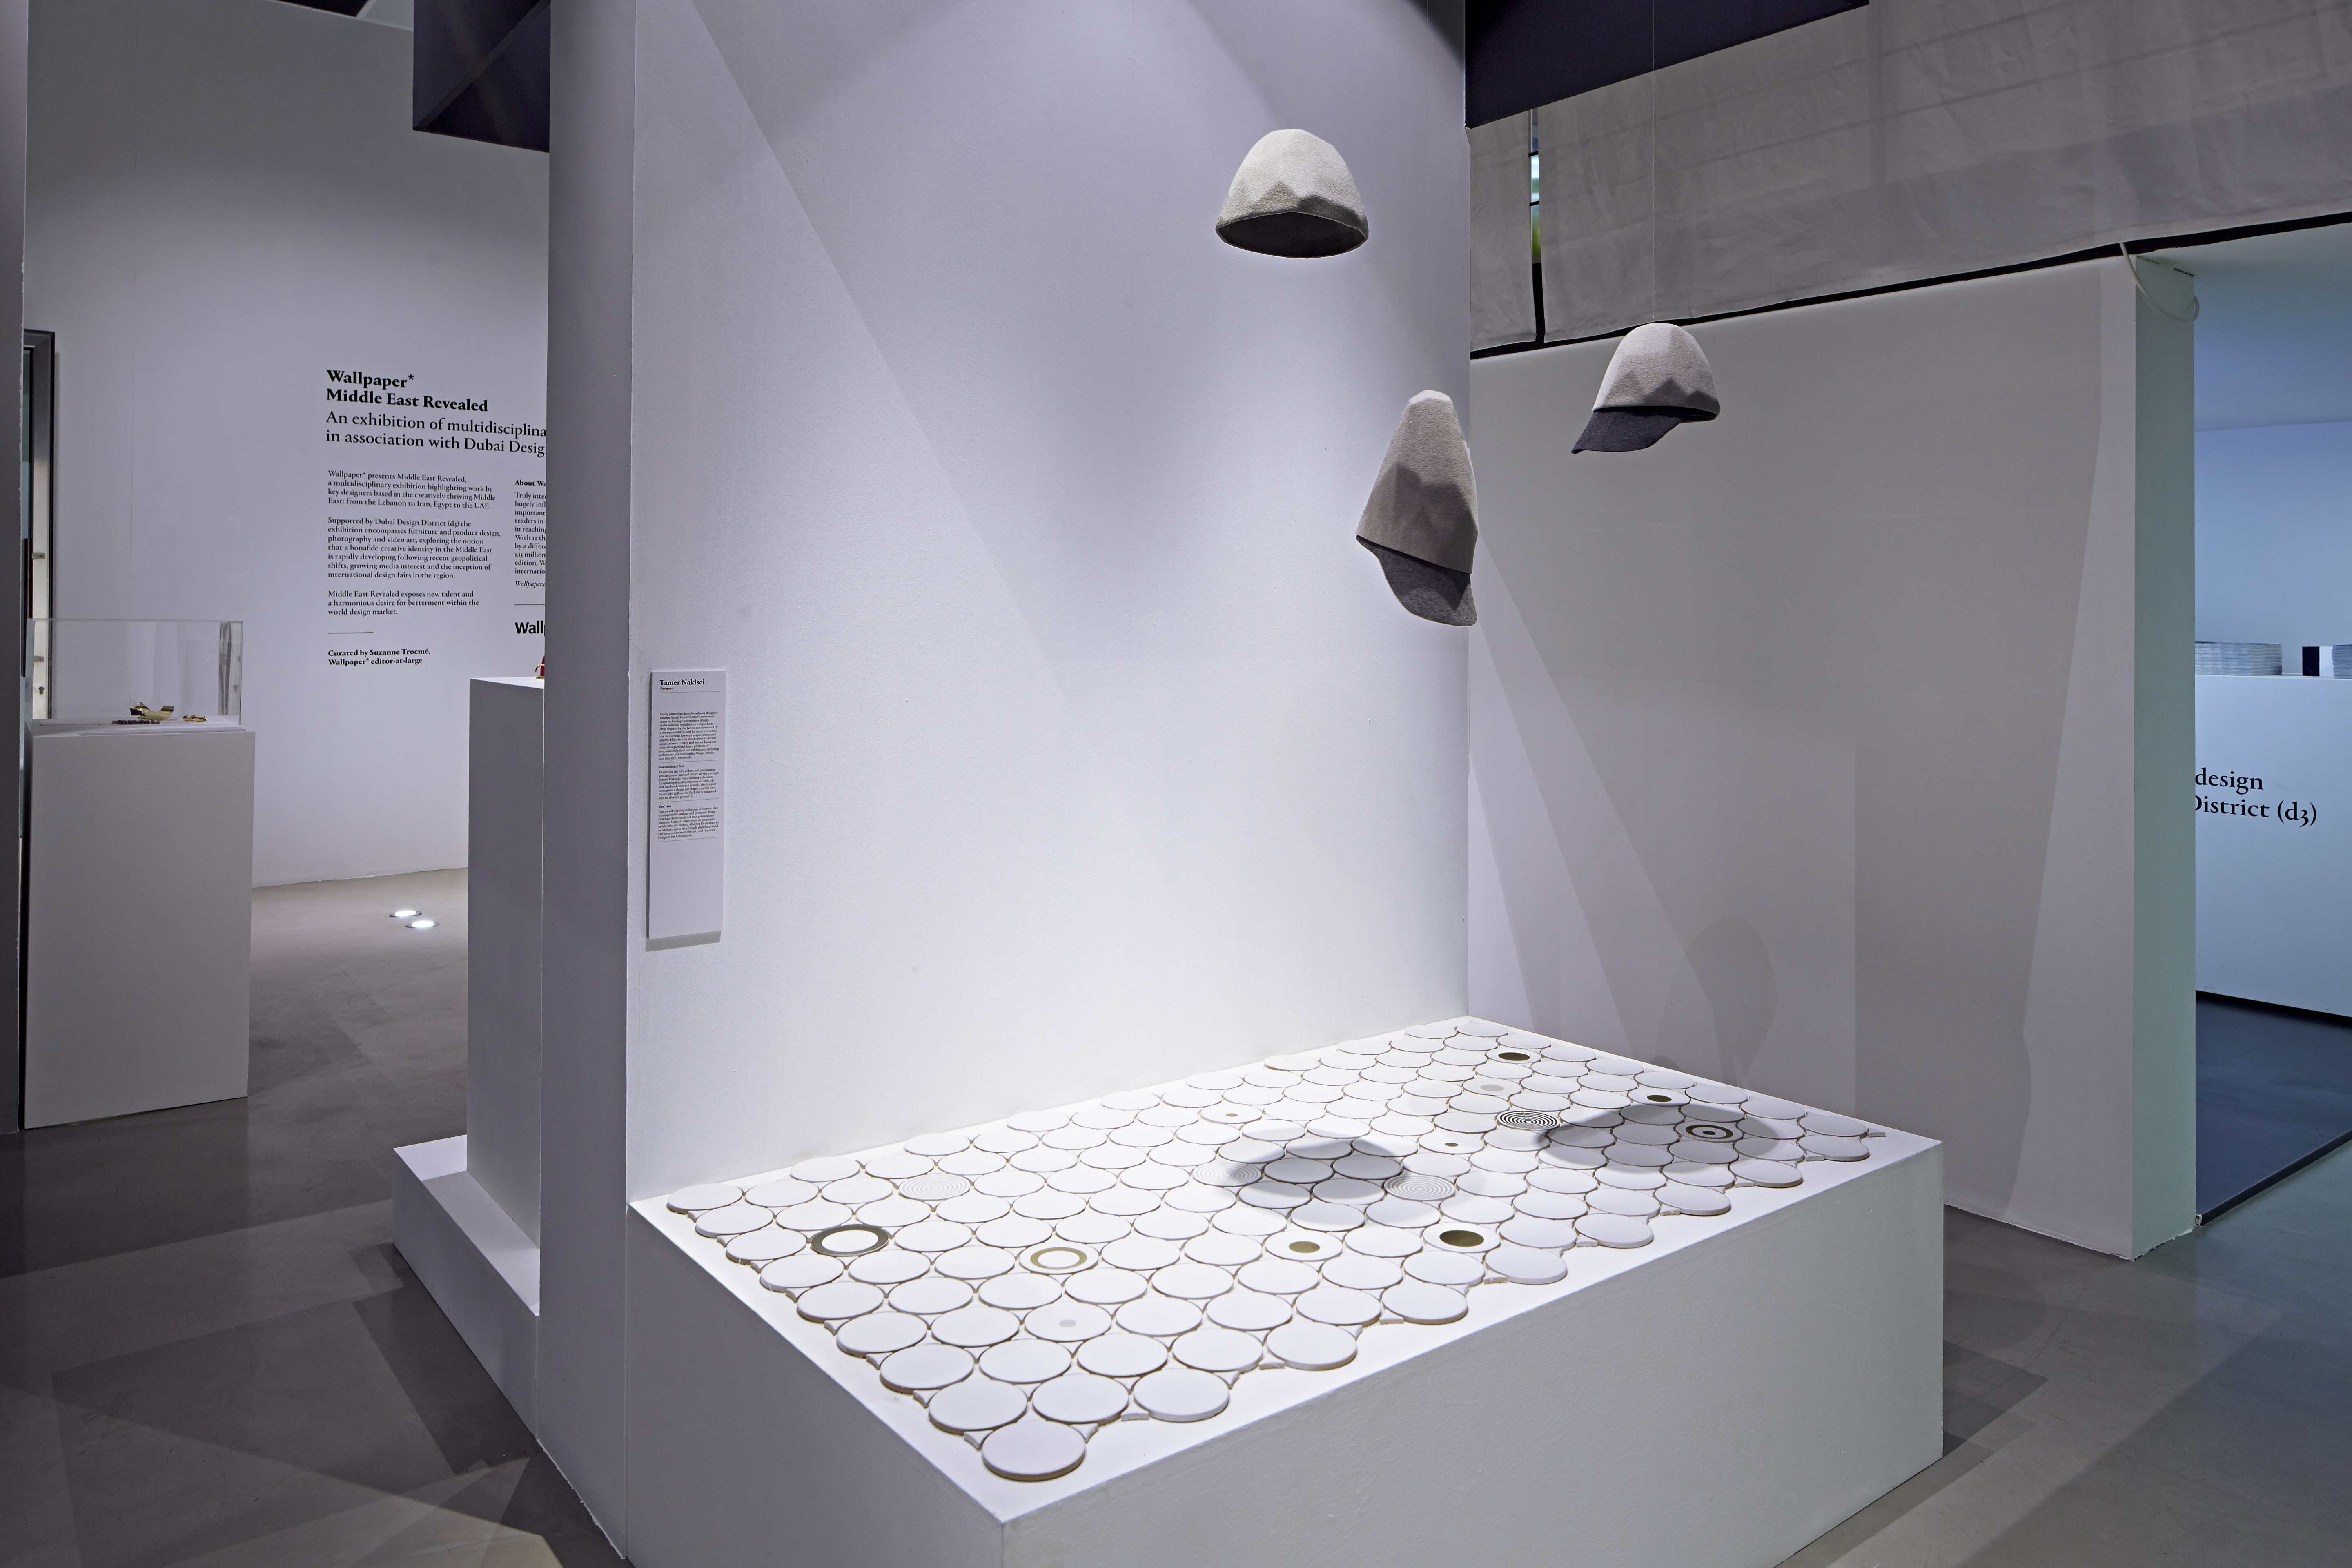 Wallpaper* D3 – Milan Design Week 2015